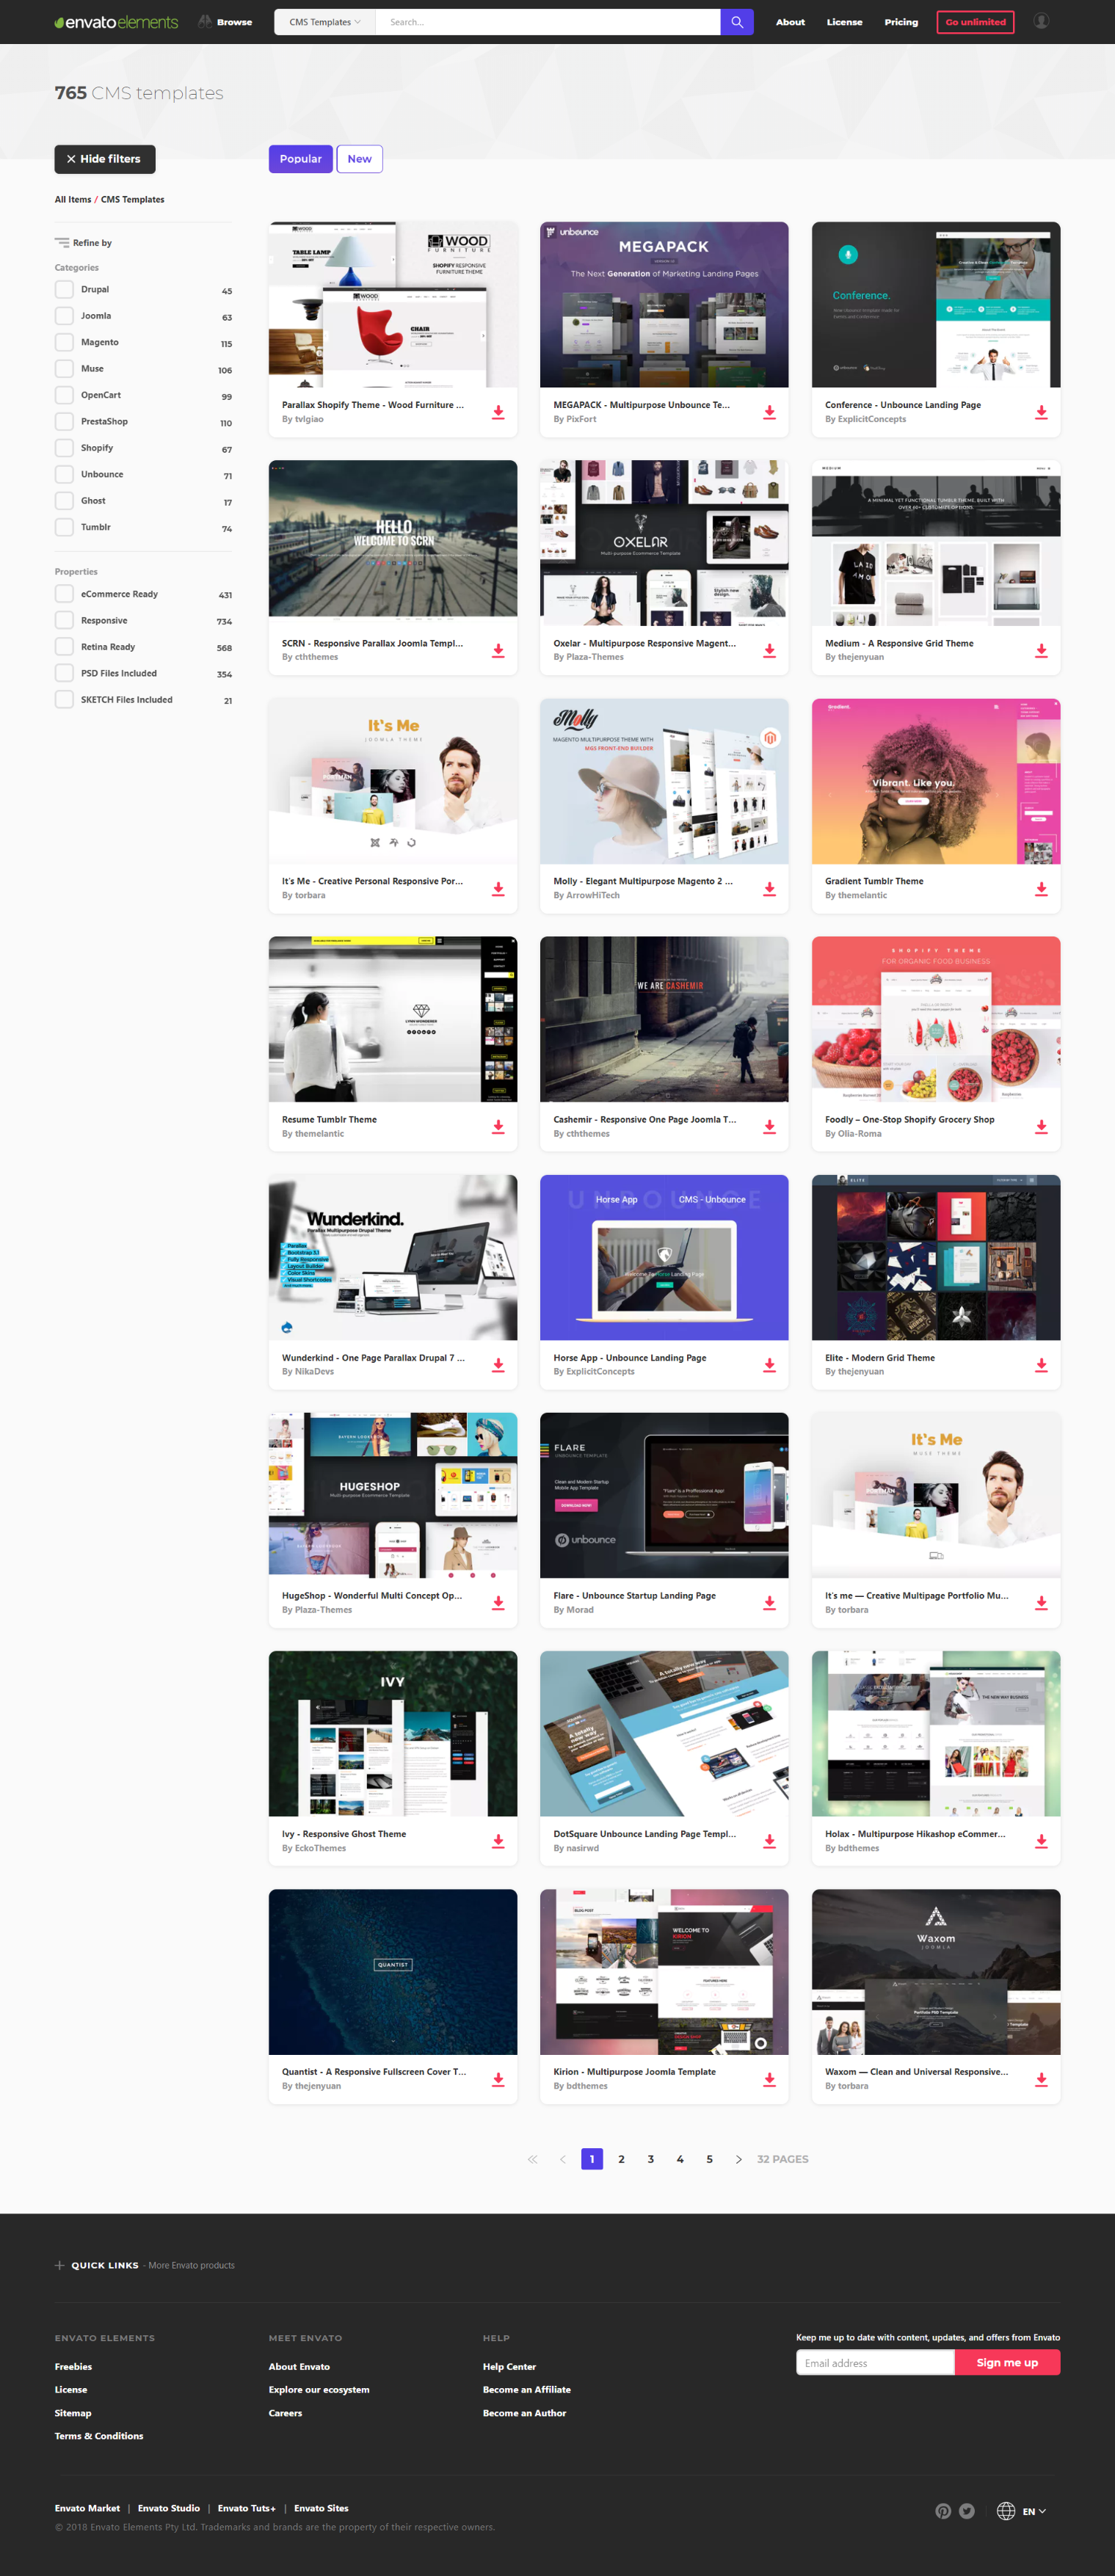 Envato Elements Is Must Have For Every Web Designer Or Developer Unlimited Collection Of Cms Templates Themes Ph Web Design Inspiration Web Design Templates